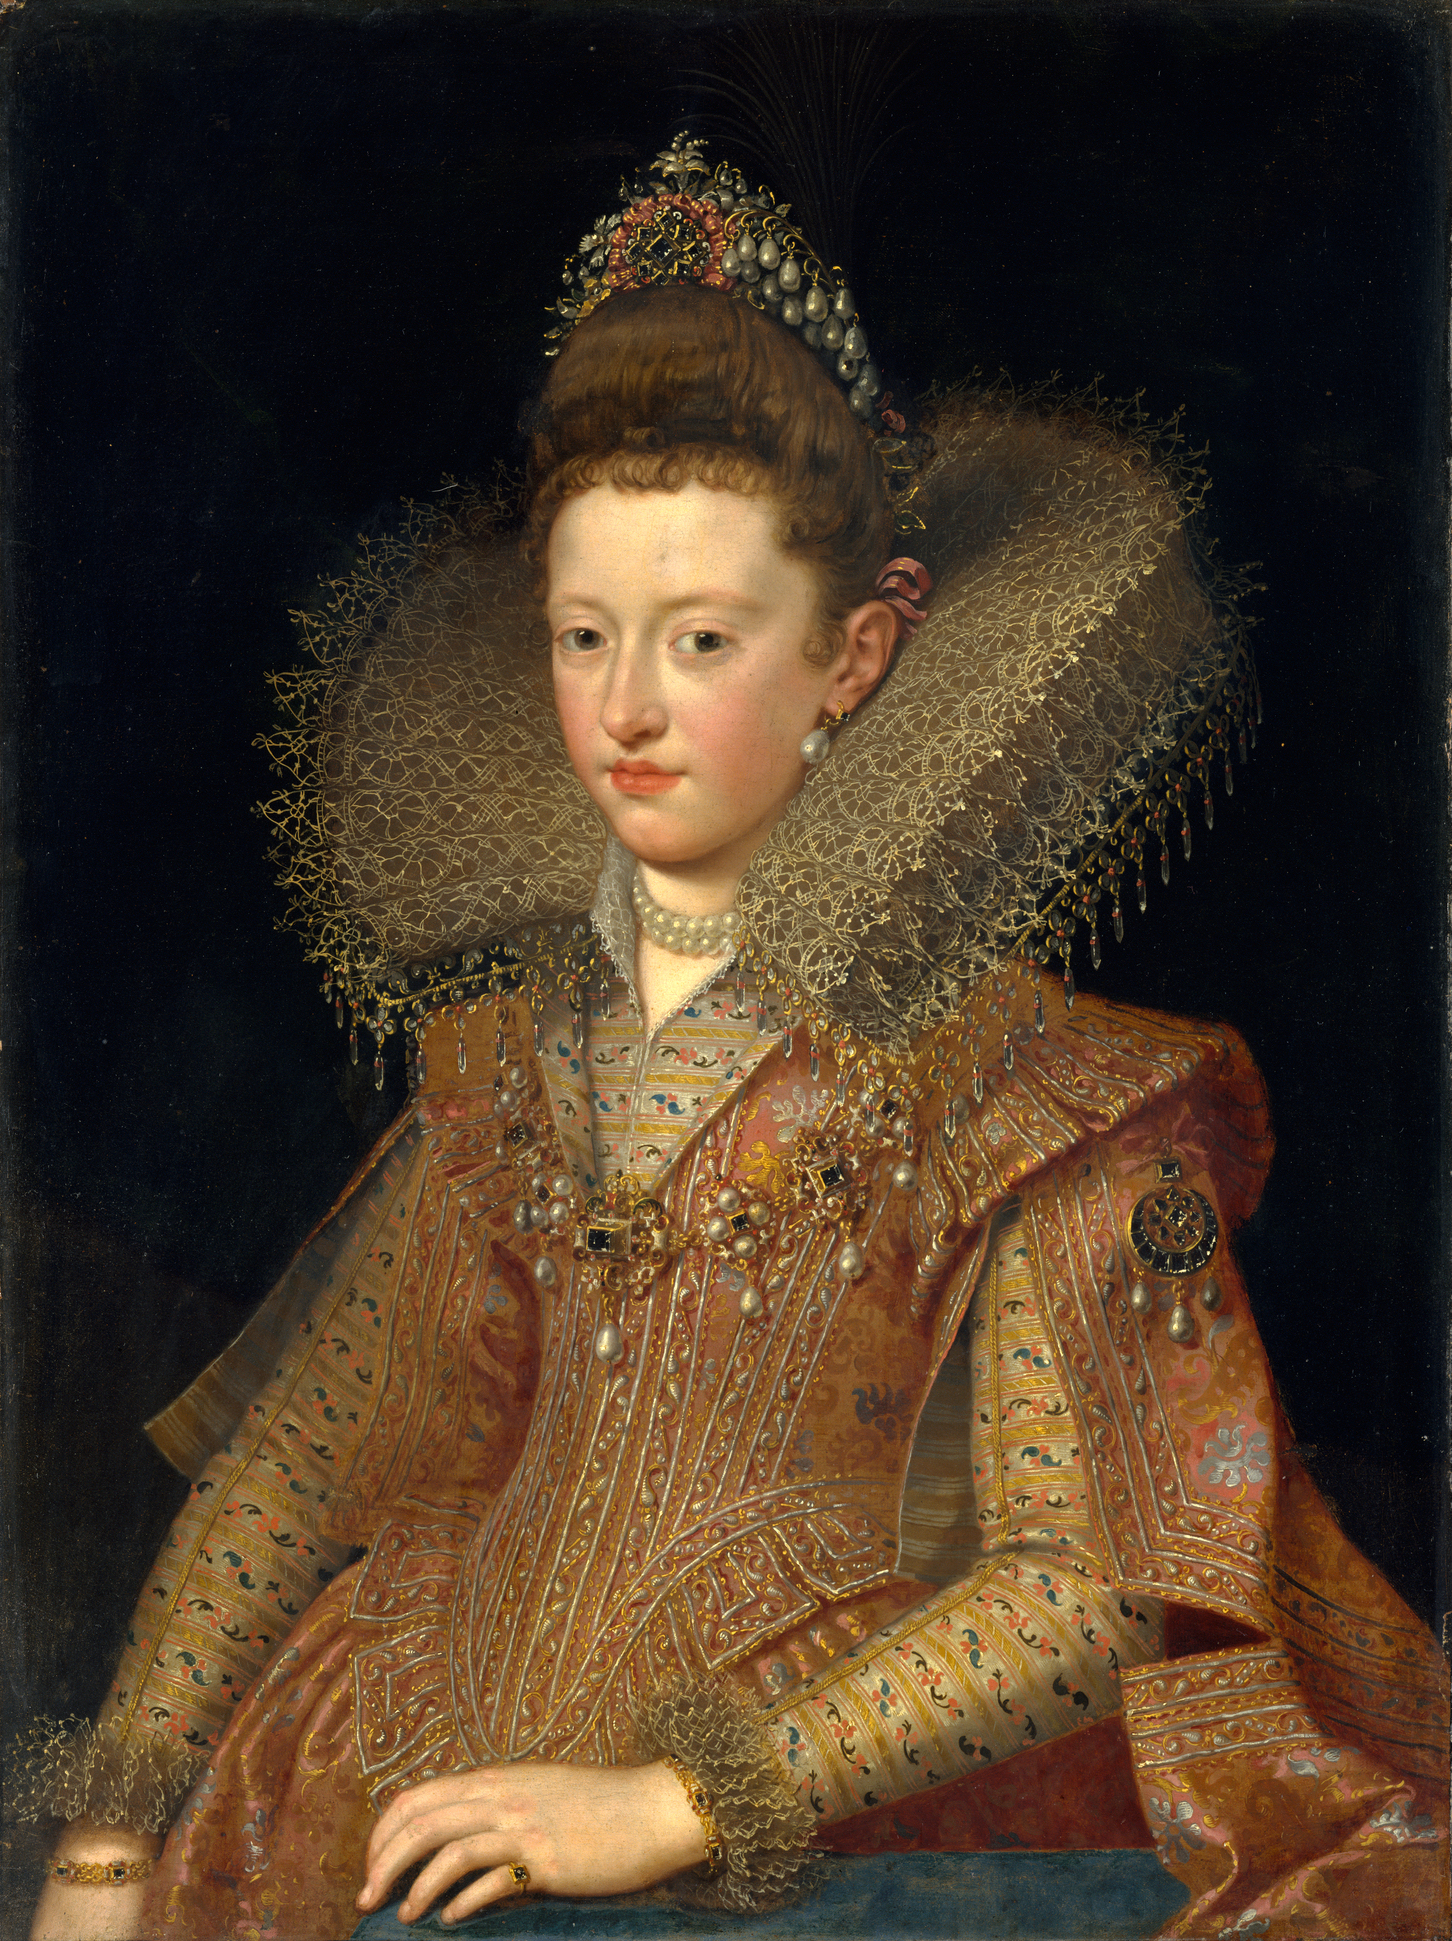 https://upload.wikimedia.org/wikipedia/commons/1/1e/Margarita_Gonzaga%2C_future_Duchess_of_Lorraine_as_depicted_in_1606_by_Frans_Pourbus_the_Younger.jpg